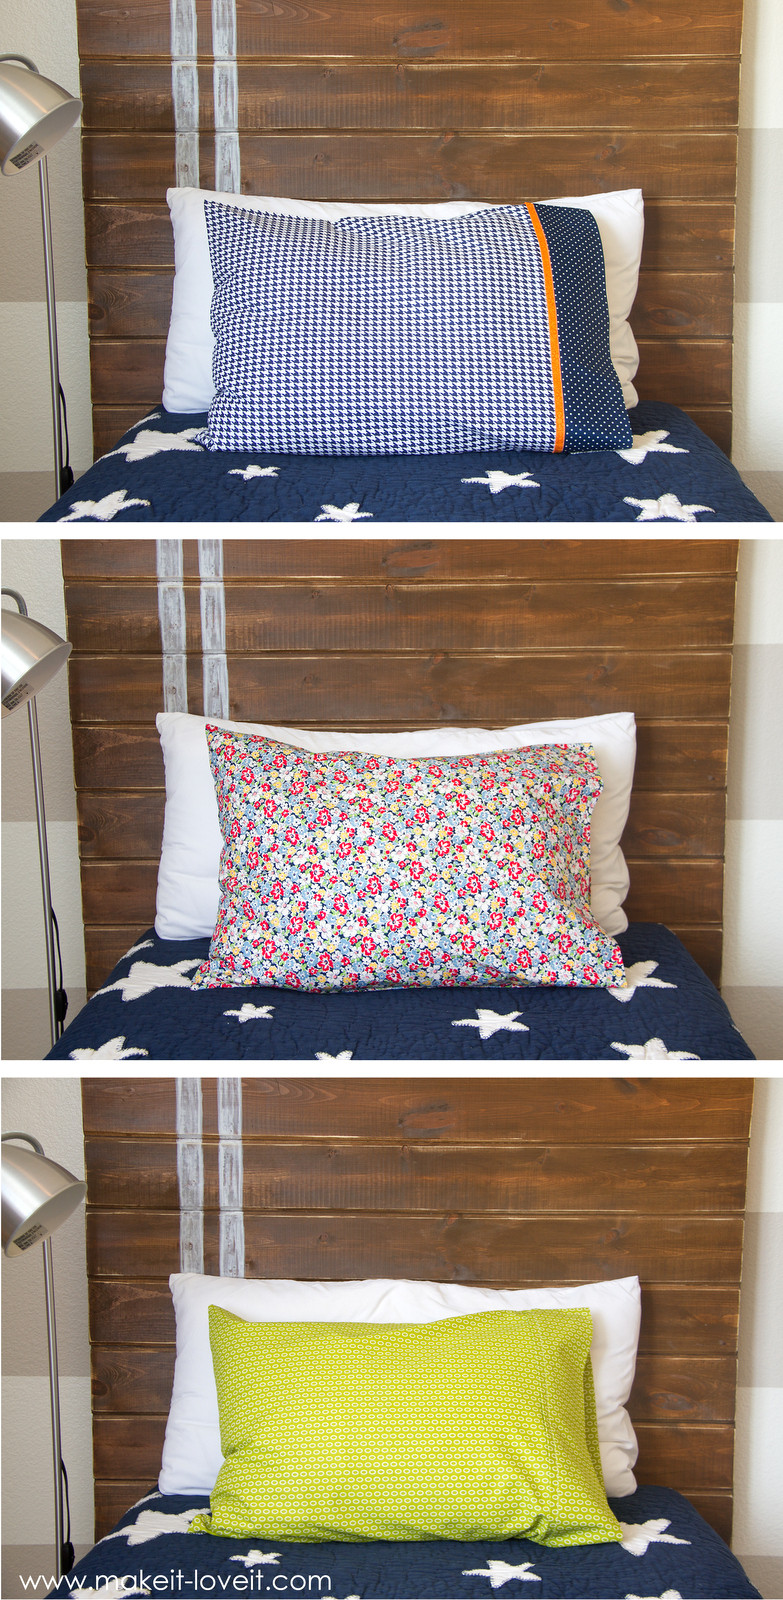 Best ideas about Pillow Bed DIY . Save or Pin DIY Bed Pillow Cases 3 sizes and 3 different styles Now.